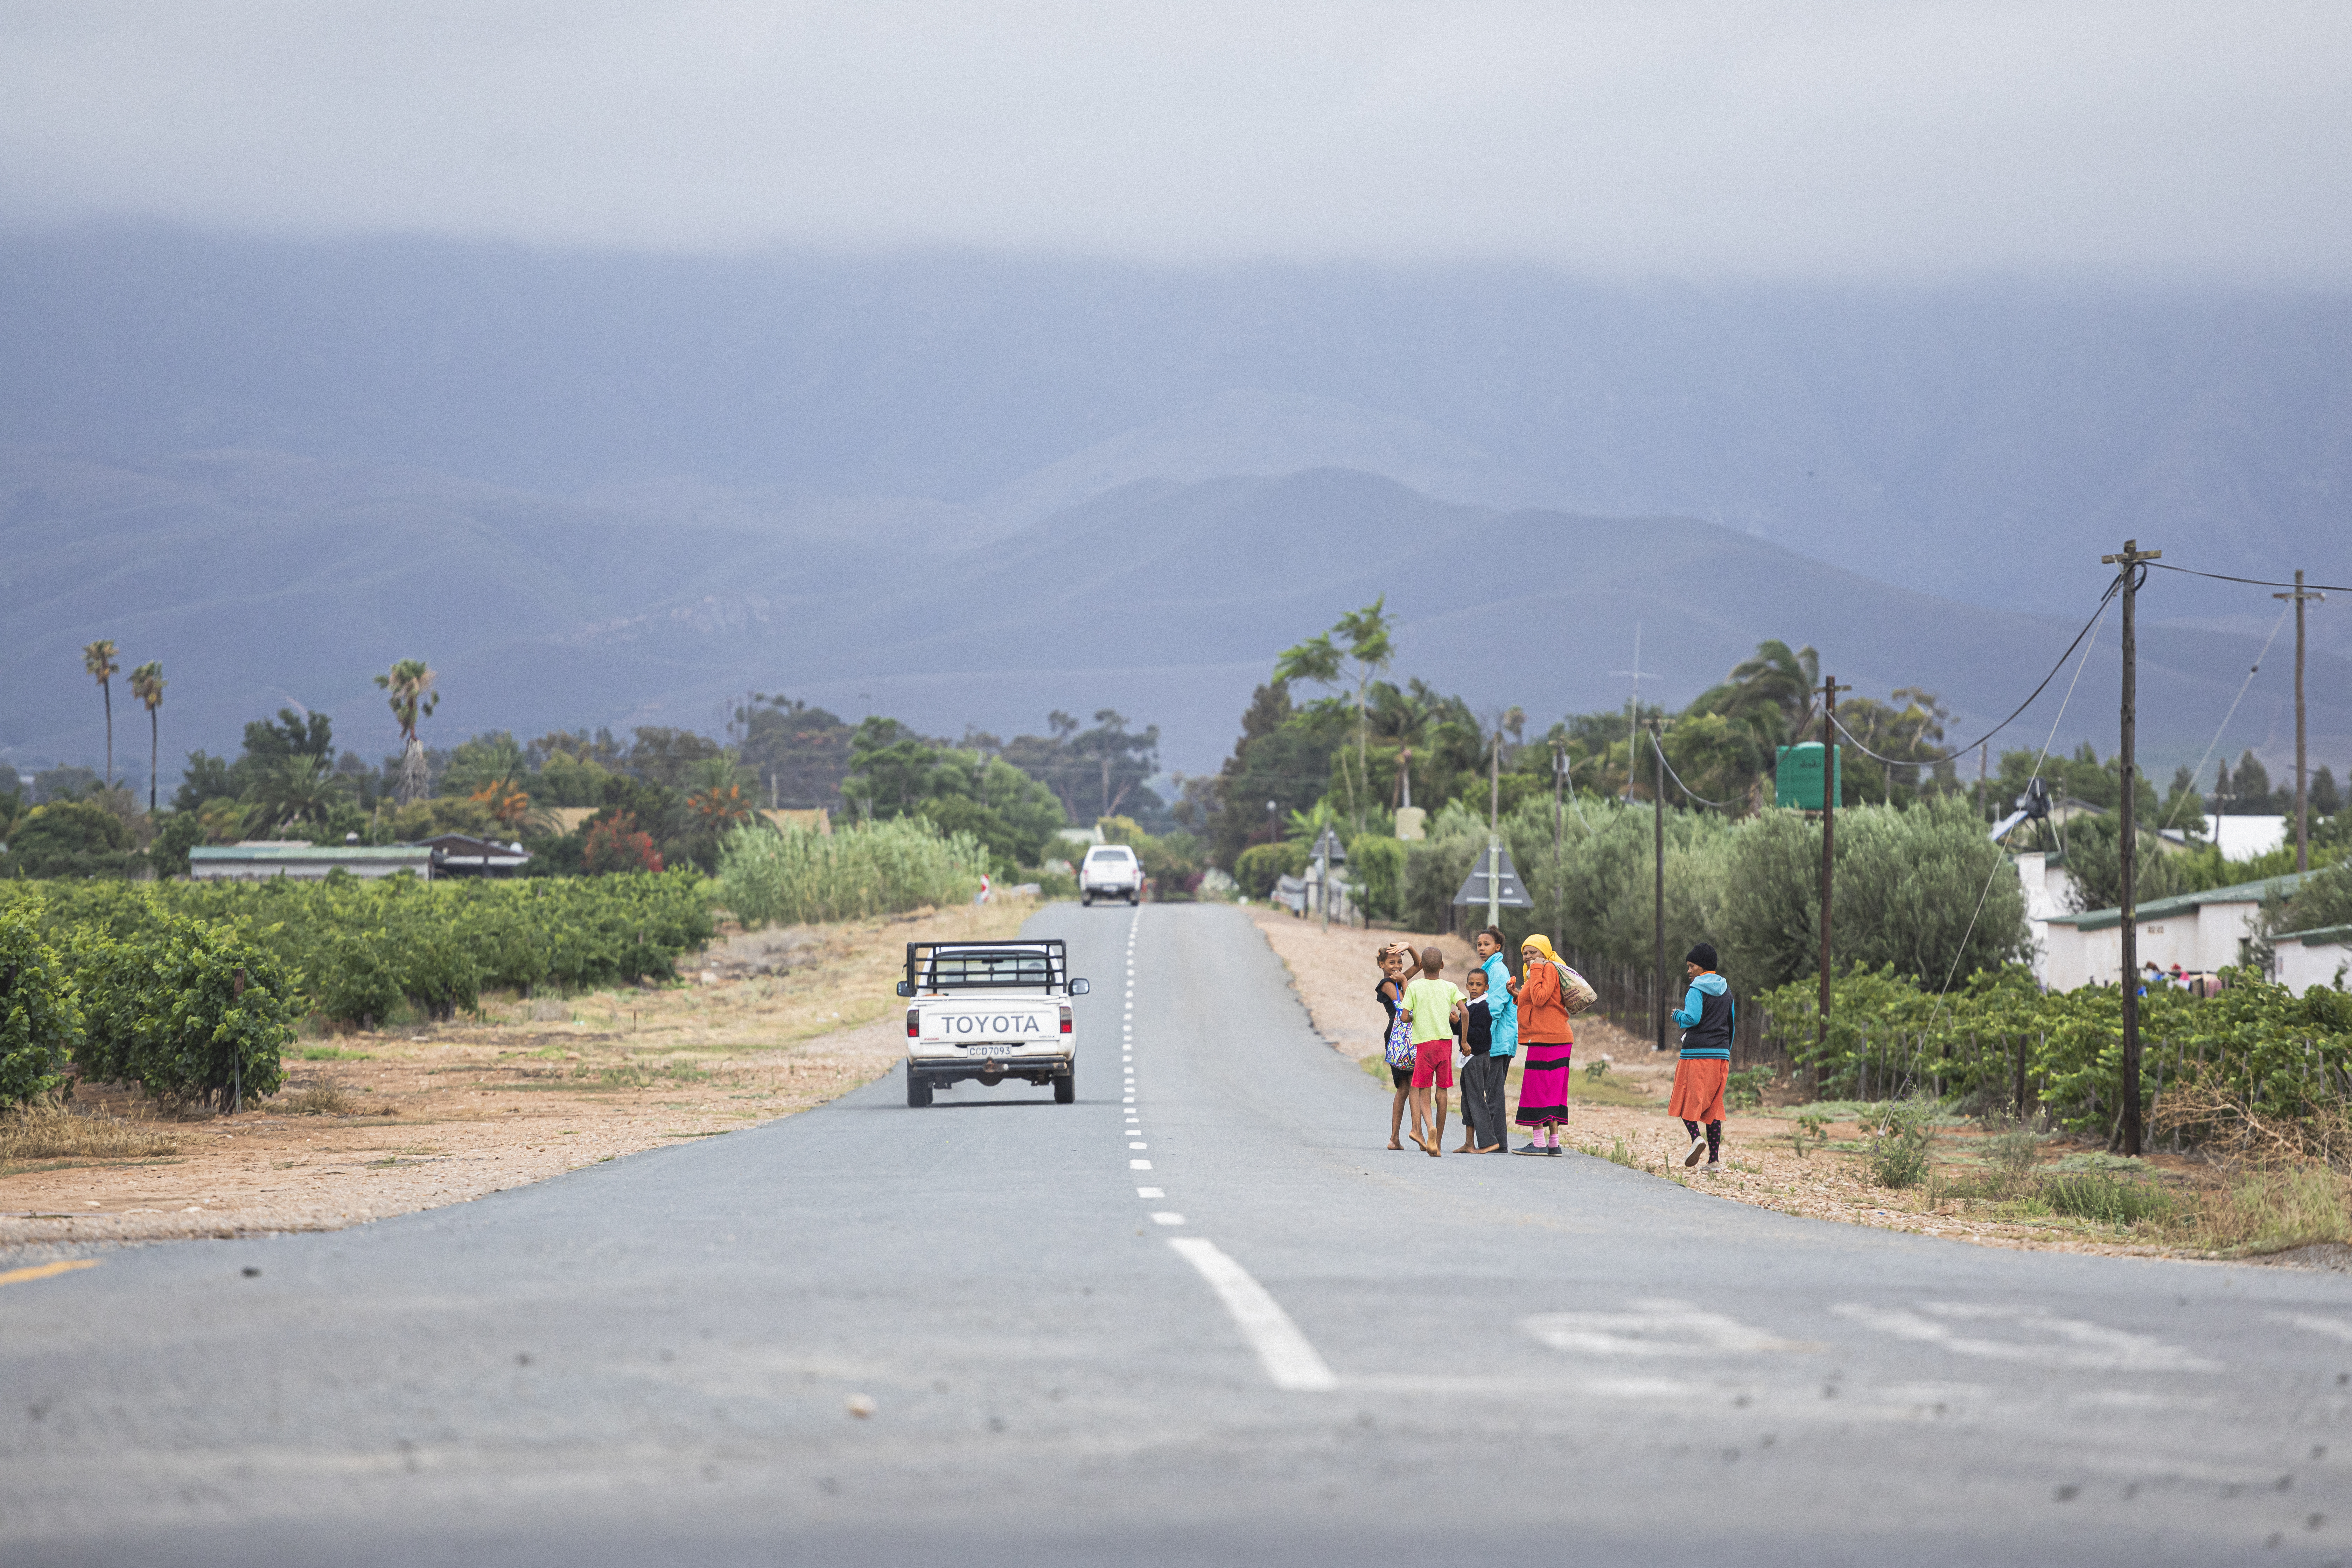 Travel - Robertson, South Africa